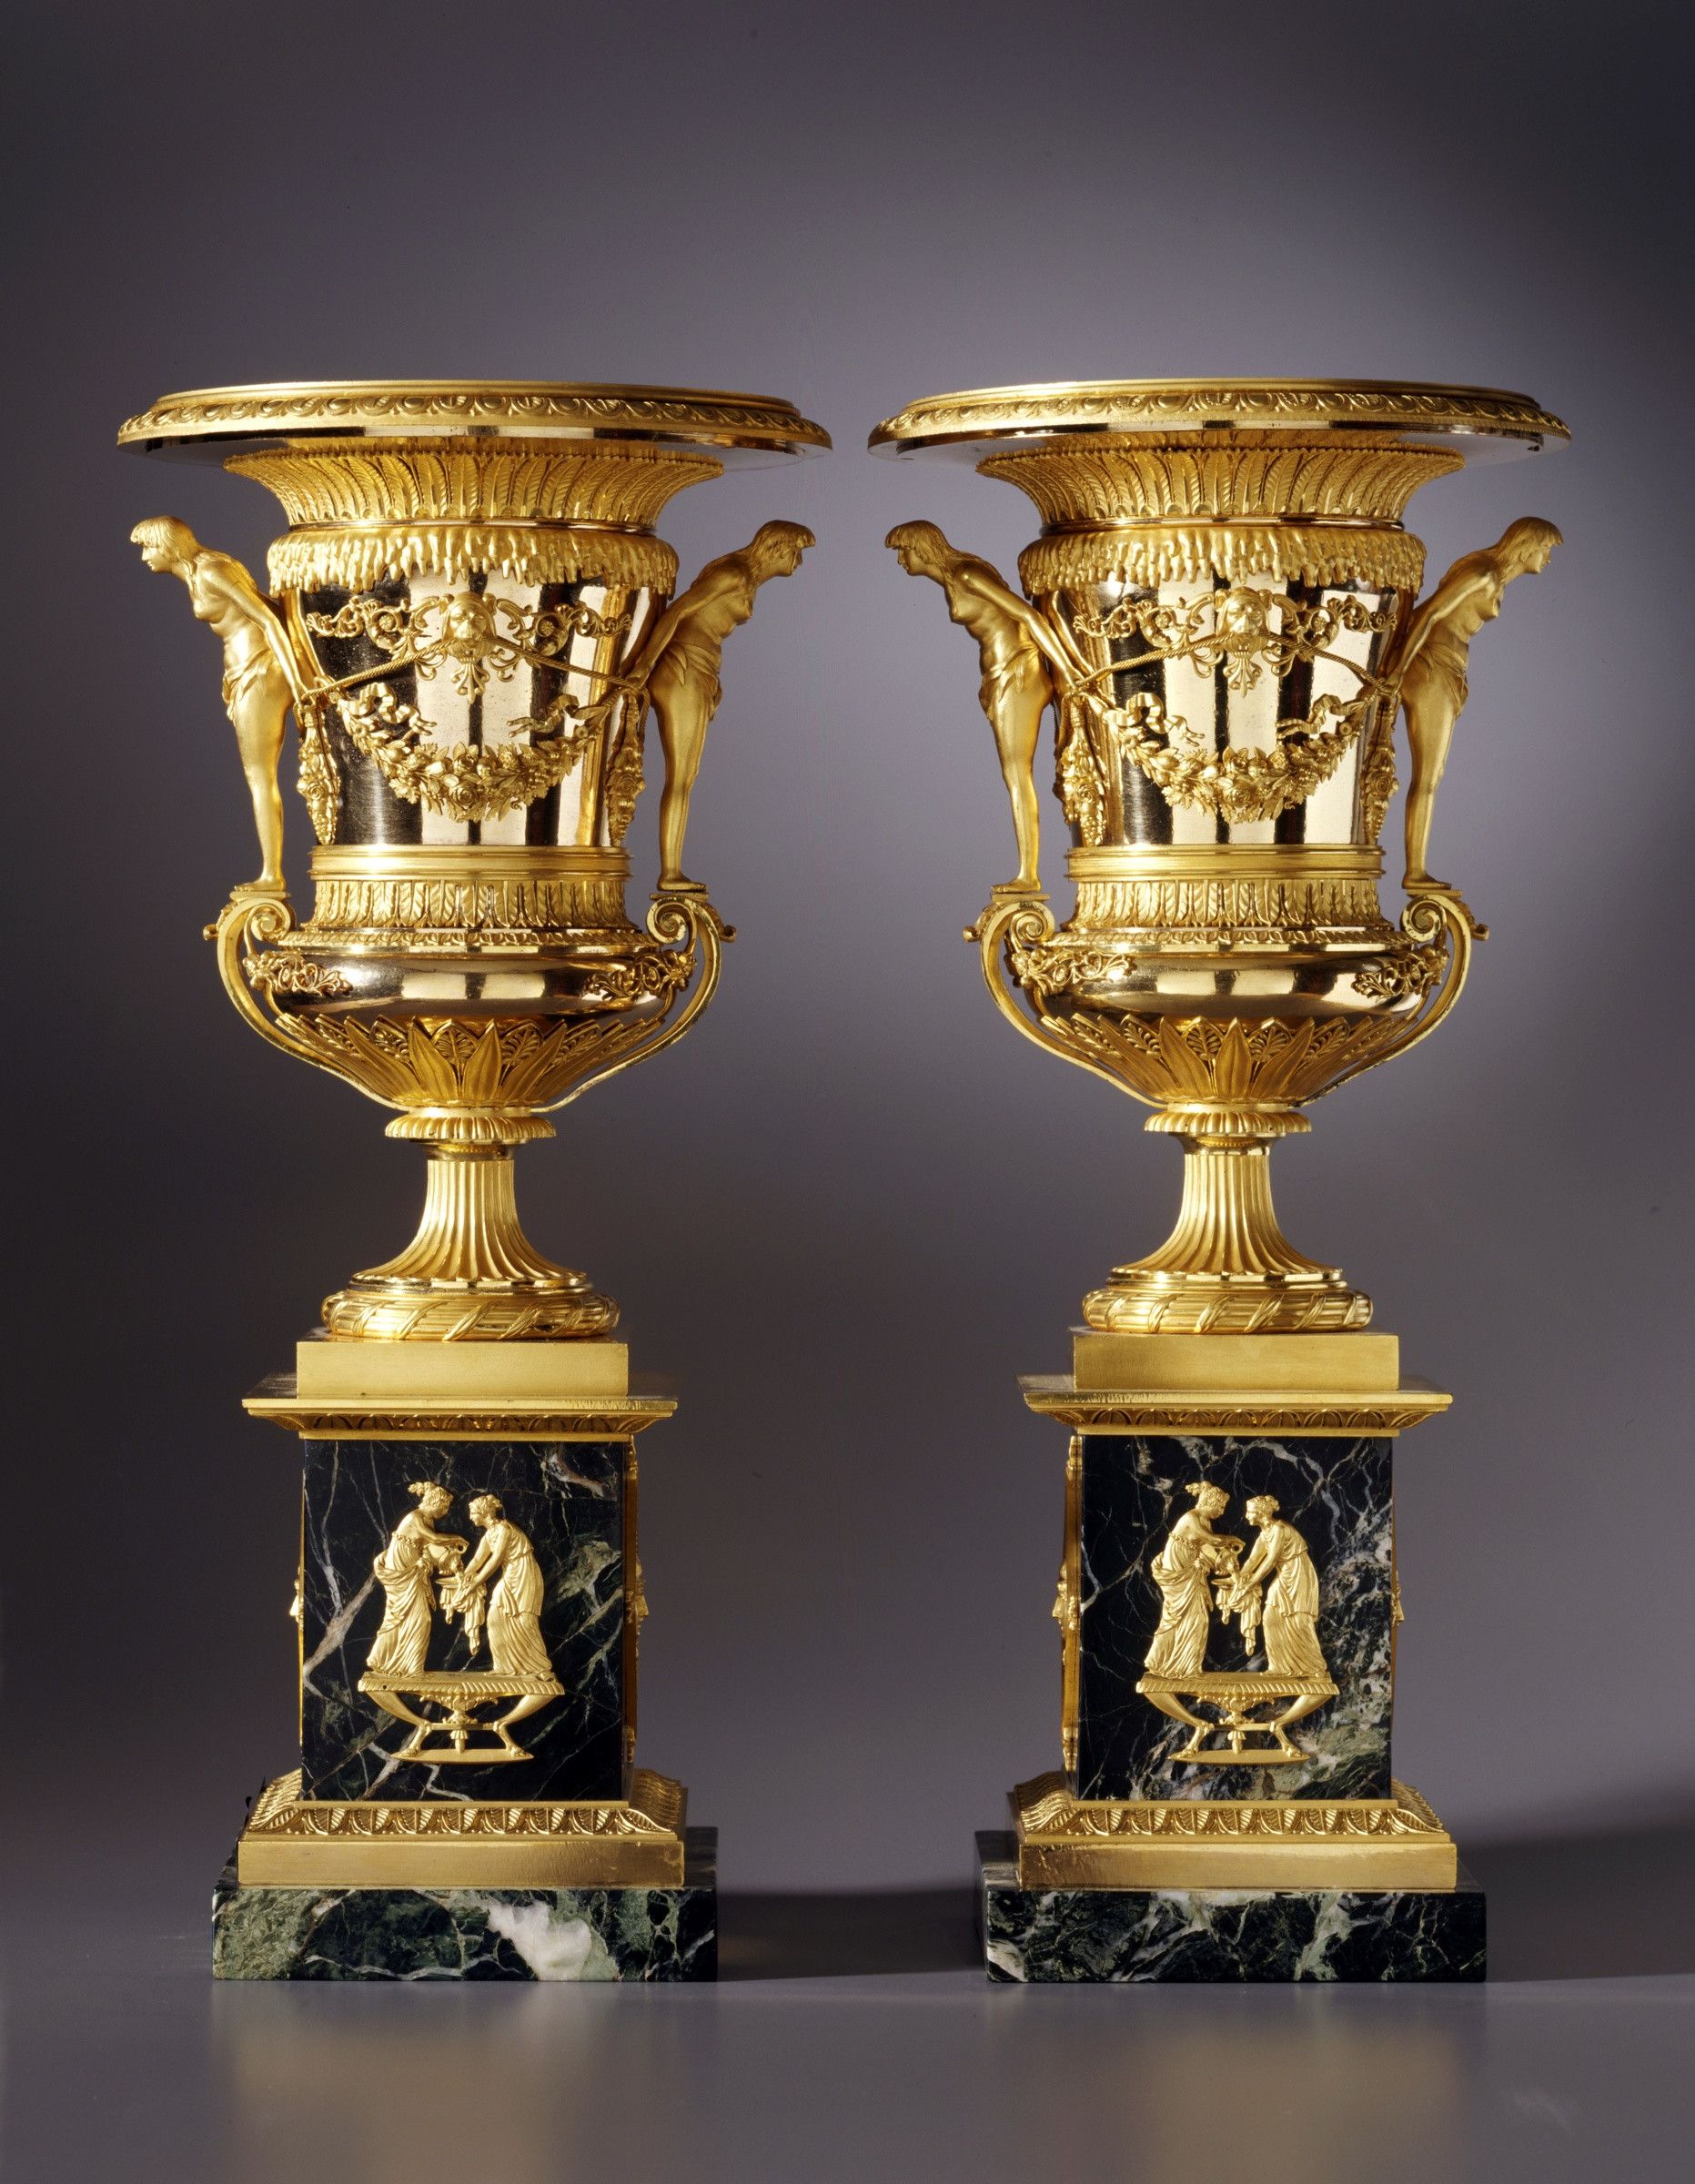 antique bronze vases and urns of friedrich bergenfeldt attributed to a pair of large sized st for a pair of large sized st petersburg empire vases attributed to friedrich bergenfeldt